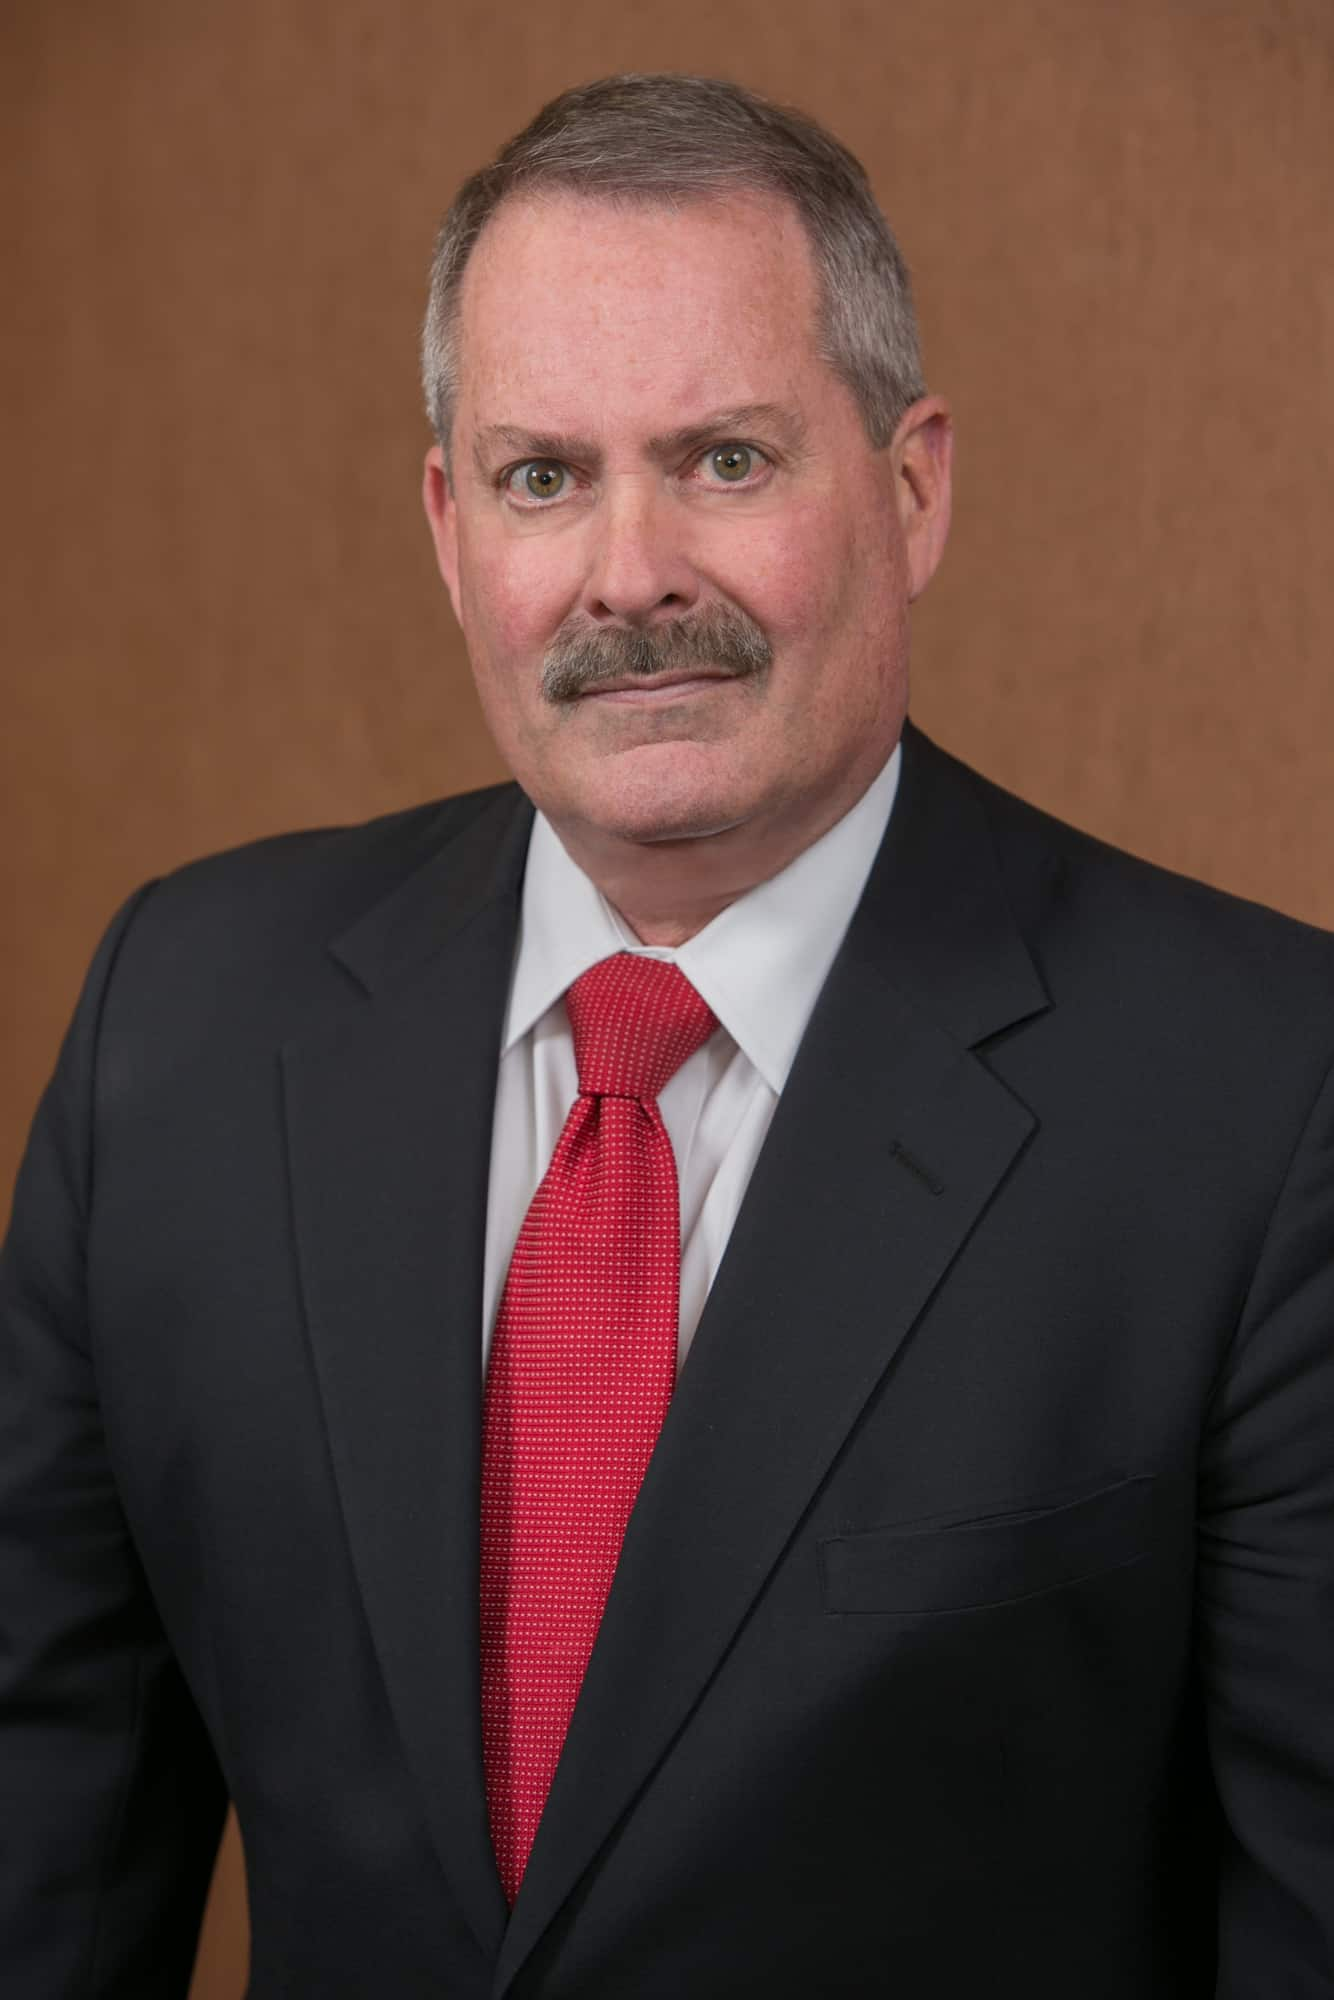 John L. McDermott, Jr.